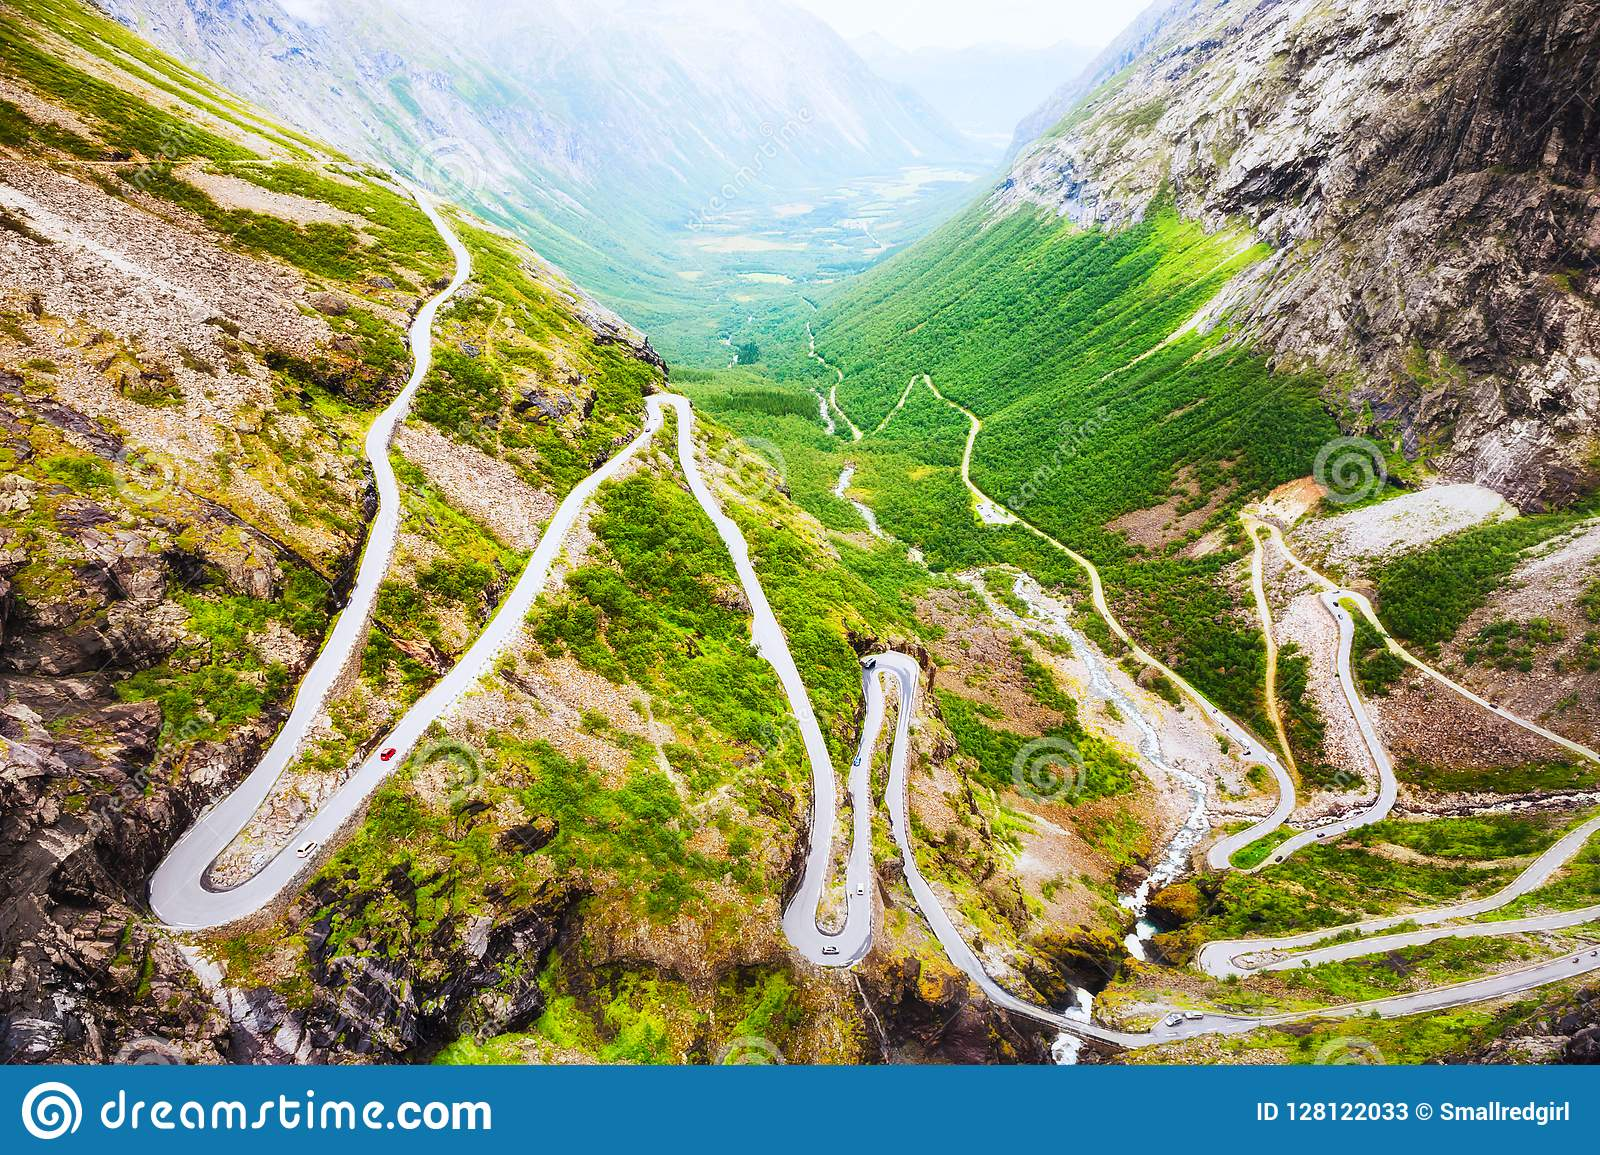 Troll road, famous touristic destination in Norway.